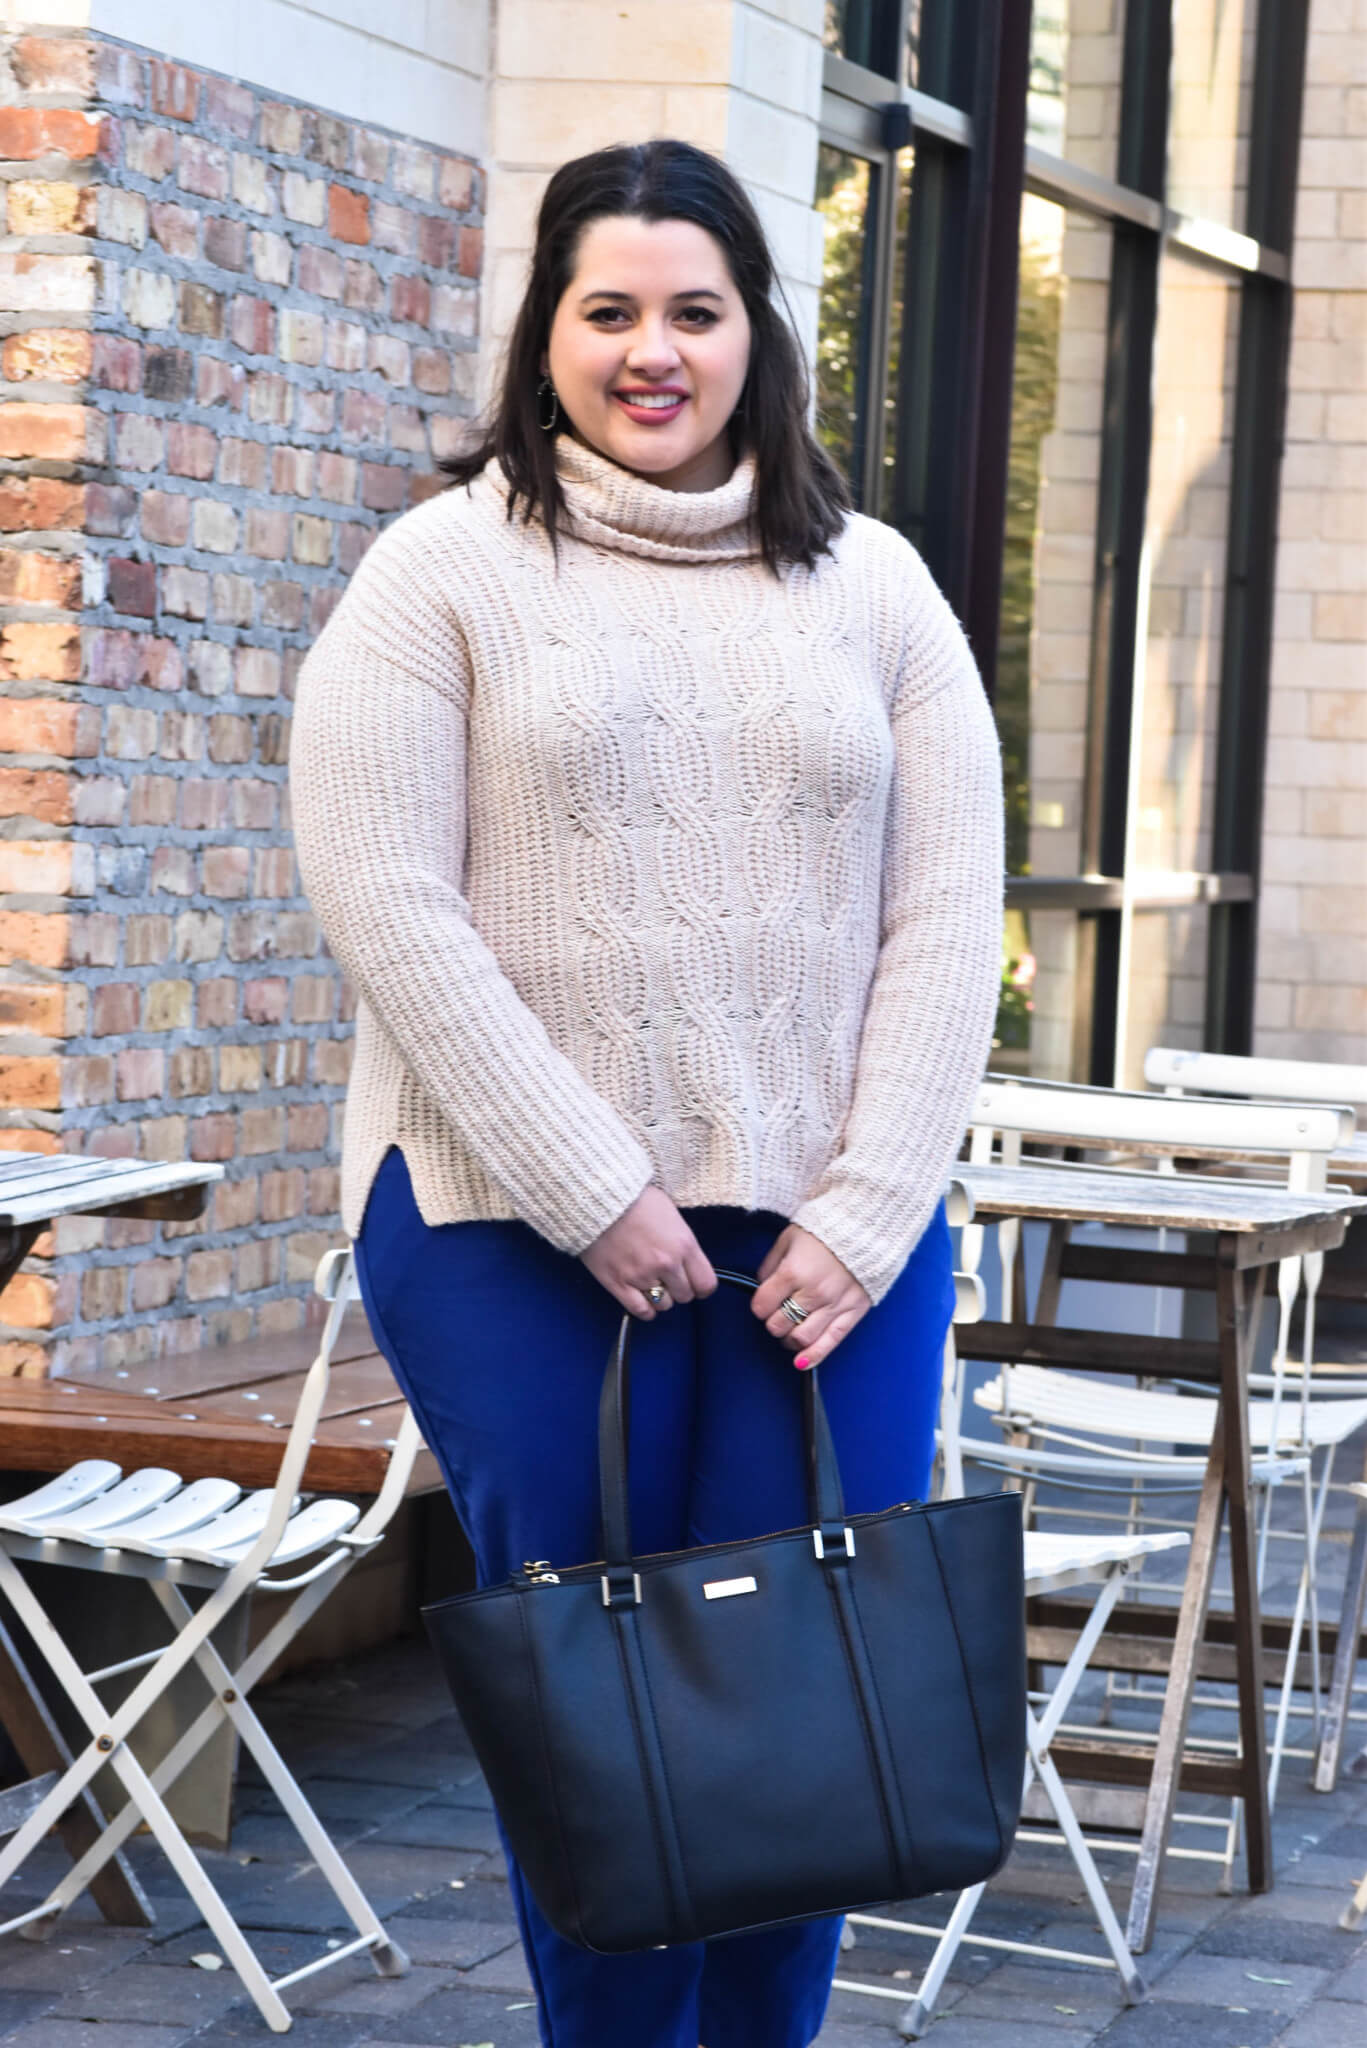 Winter Work Wear | Something Gold, Something Blue - Curvy Style Blog | What to wear to work in the cooler months - my recommendation: a turtlneck and colored slacks